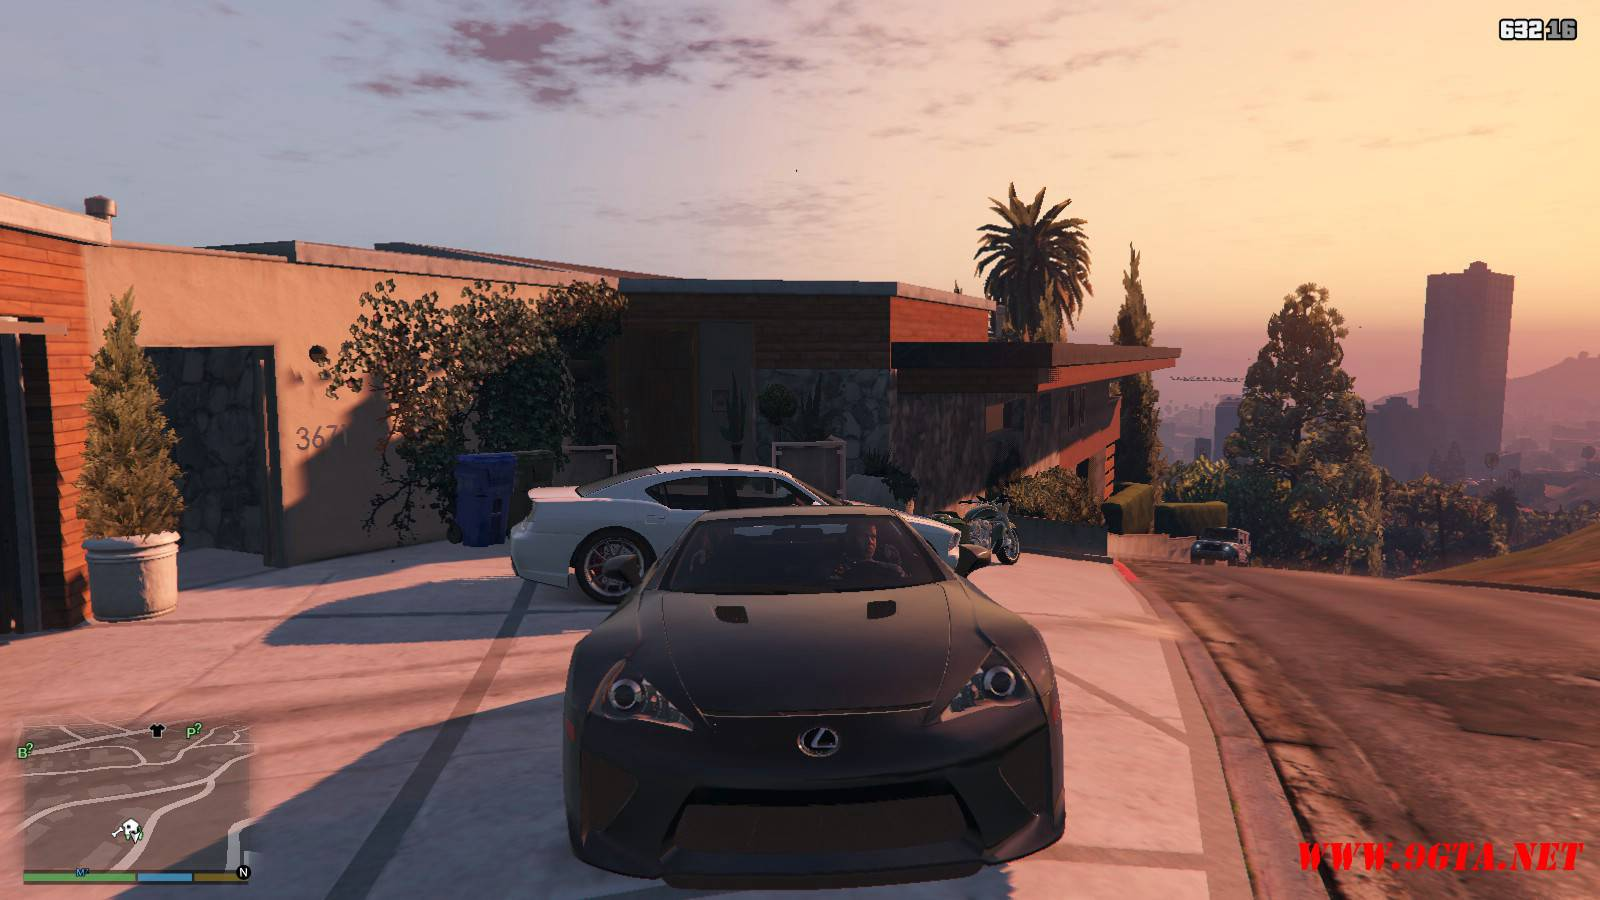 2010 Lexus LFA v2.0 Mod For GTA5 (8)